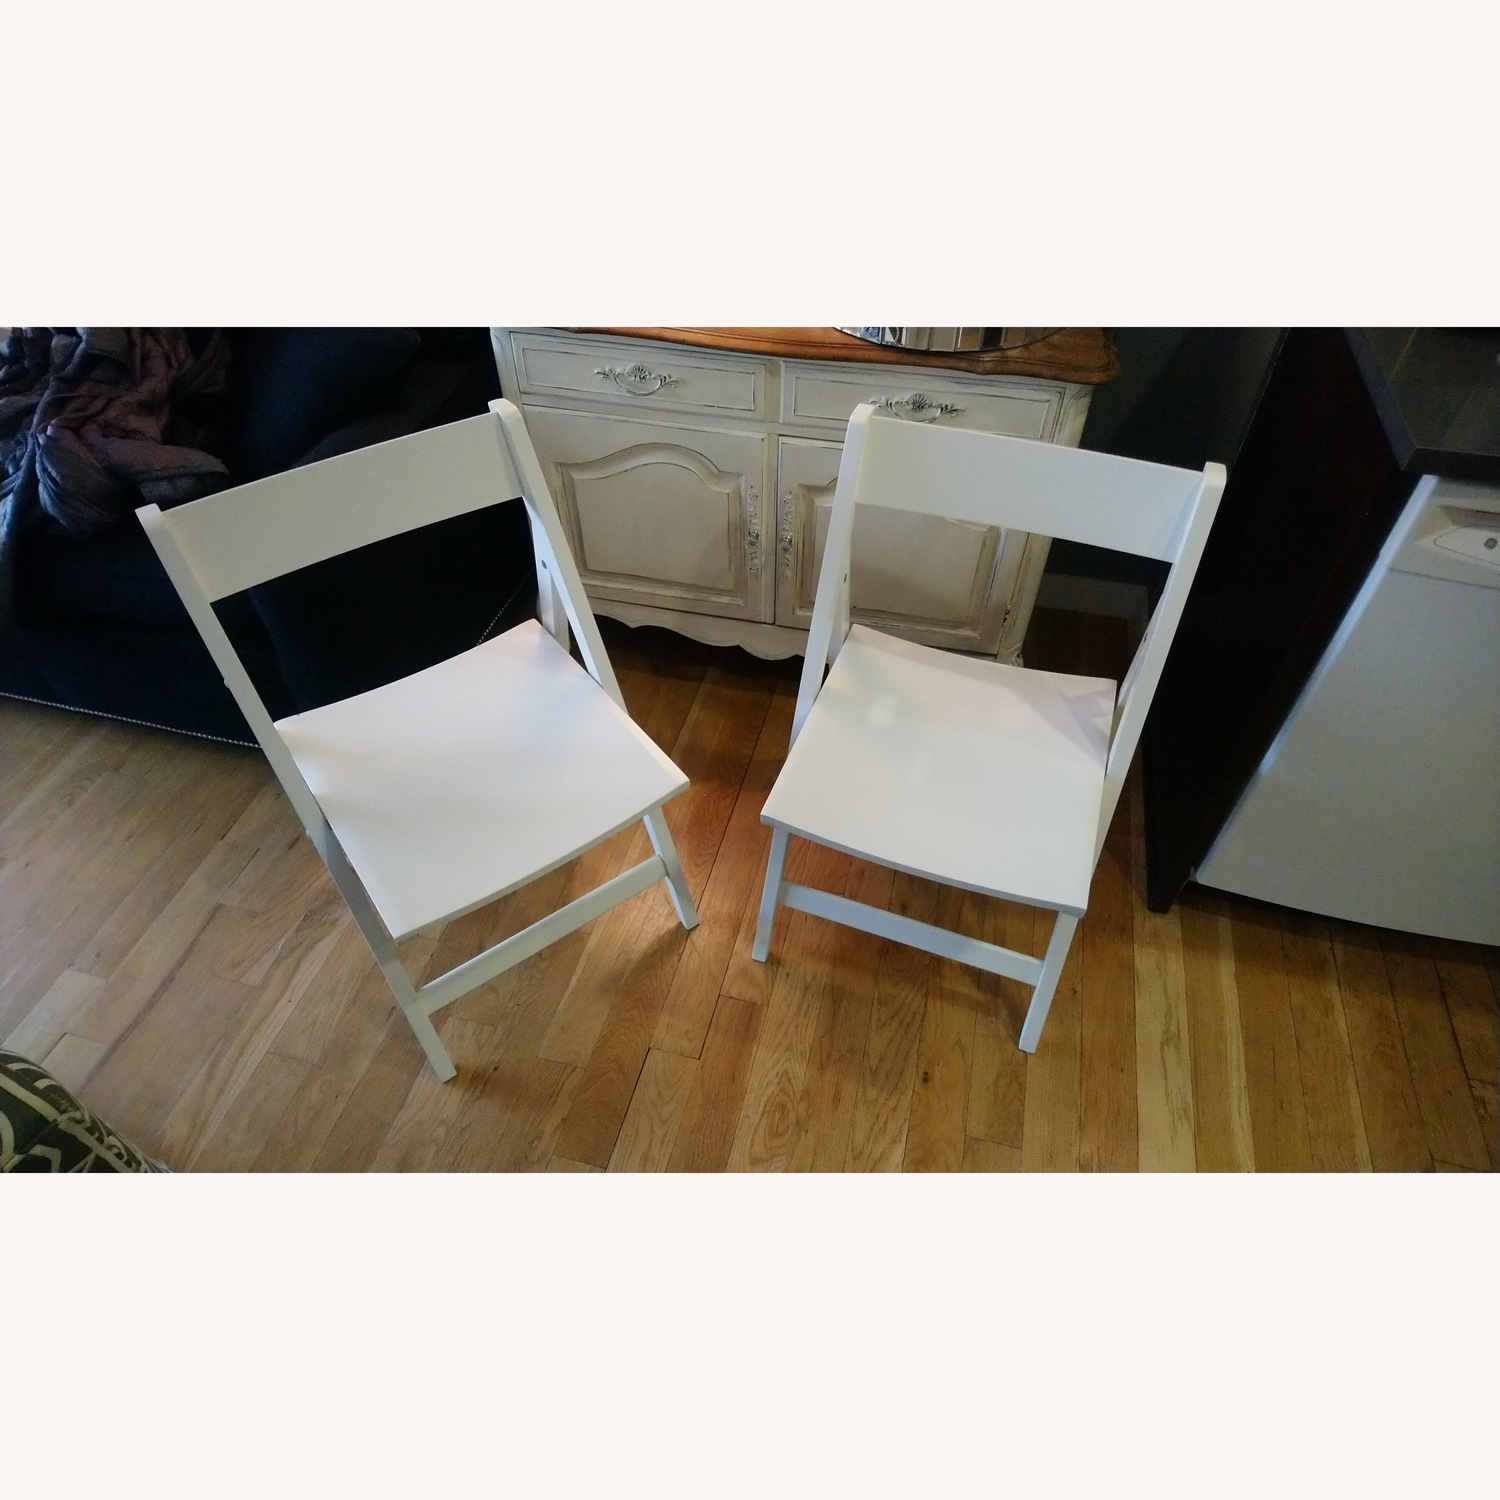 Two Rarely Used Folding Wooden Chairs